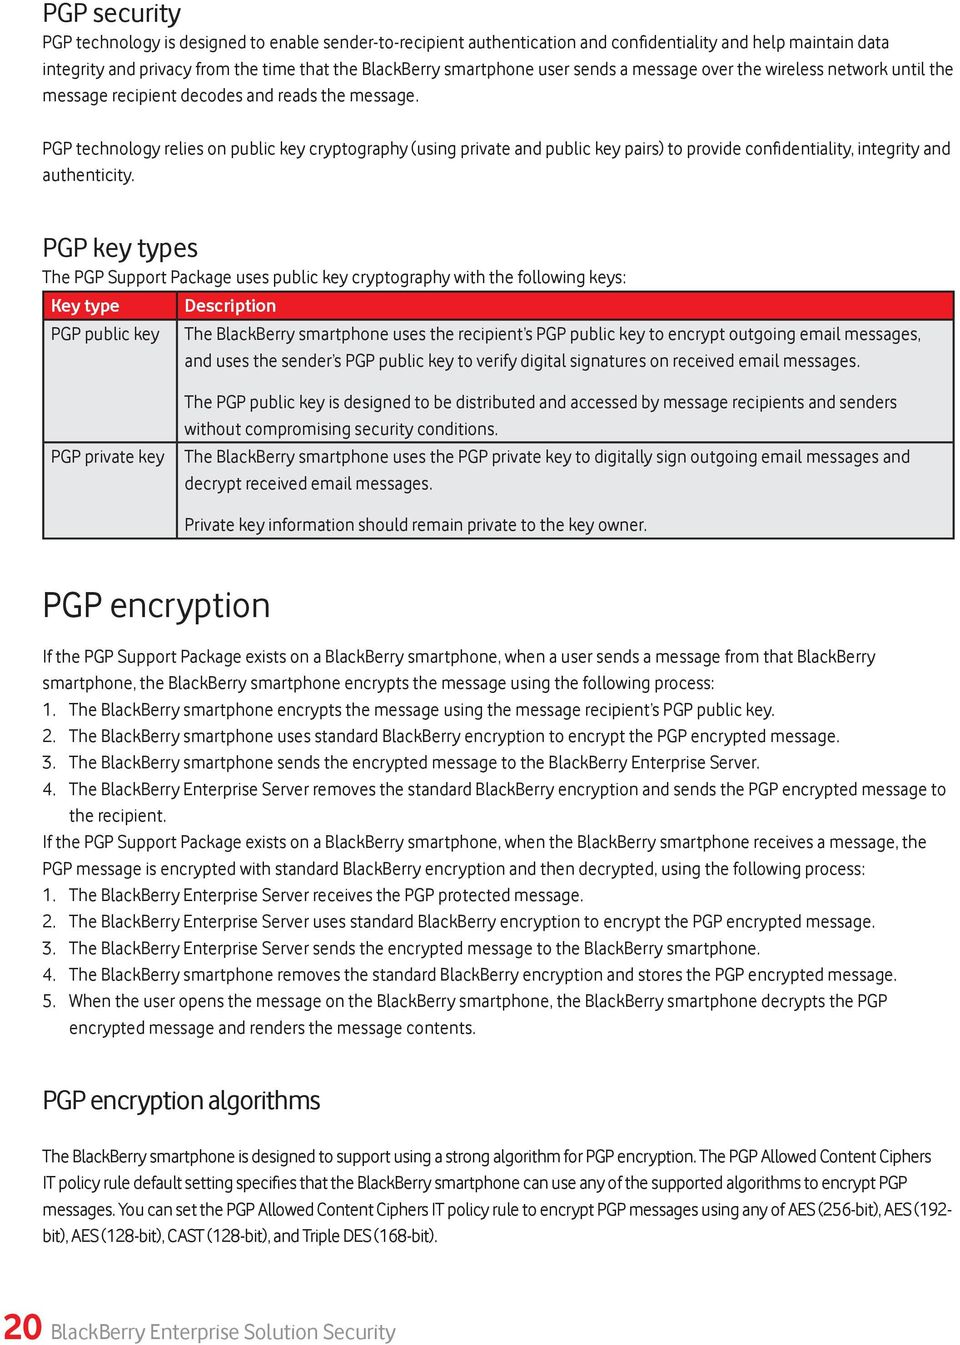 PGP technology relies on public key cryptography (using private and public key pairs) to provide confidentiality, integrity and authenticity.